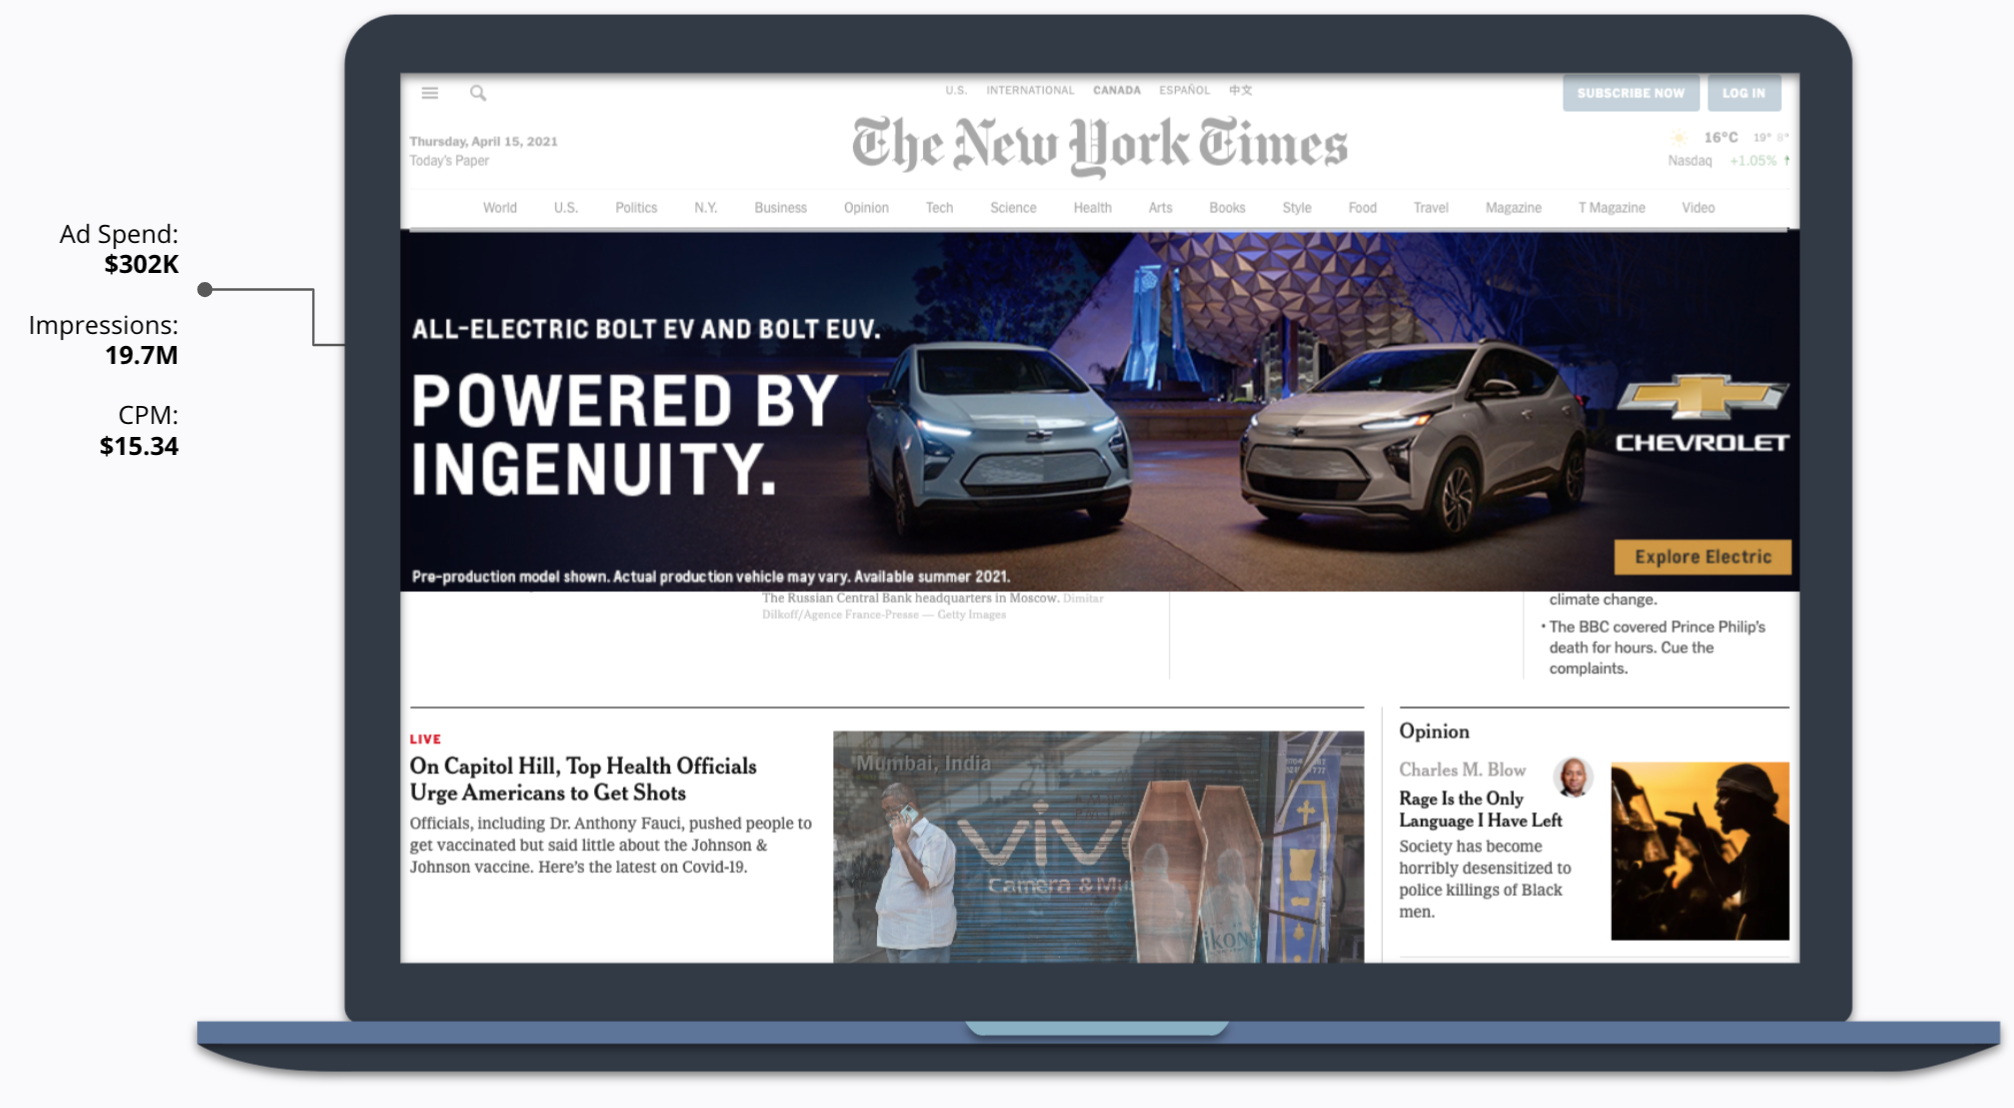 How Chevrolet Partnered with Disney –Powered by Ingenuity Ad in New York Times